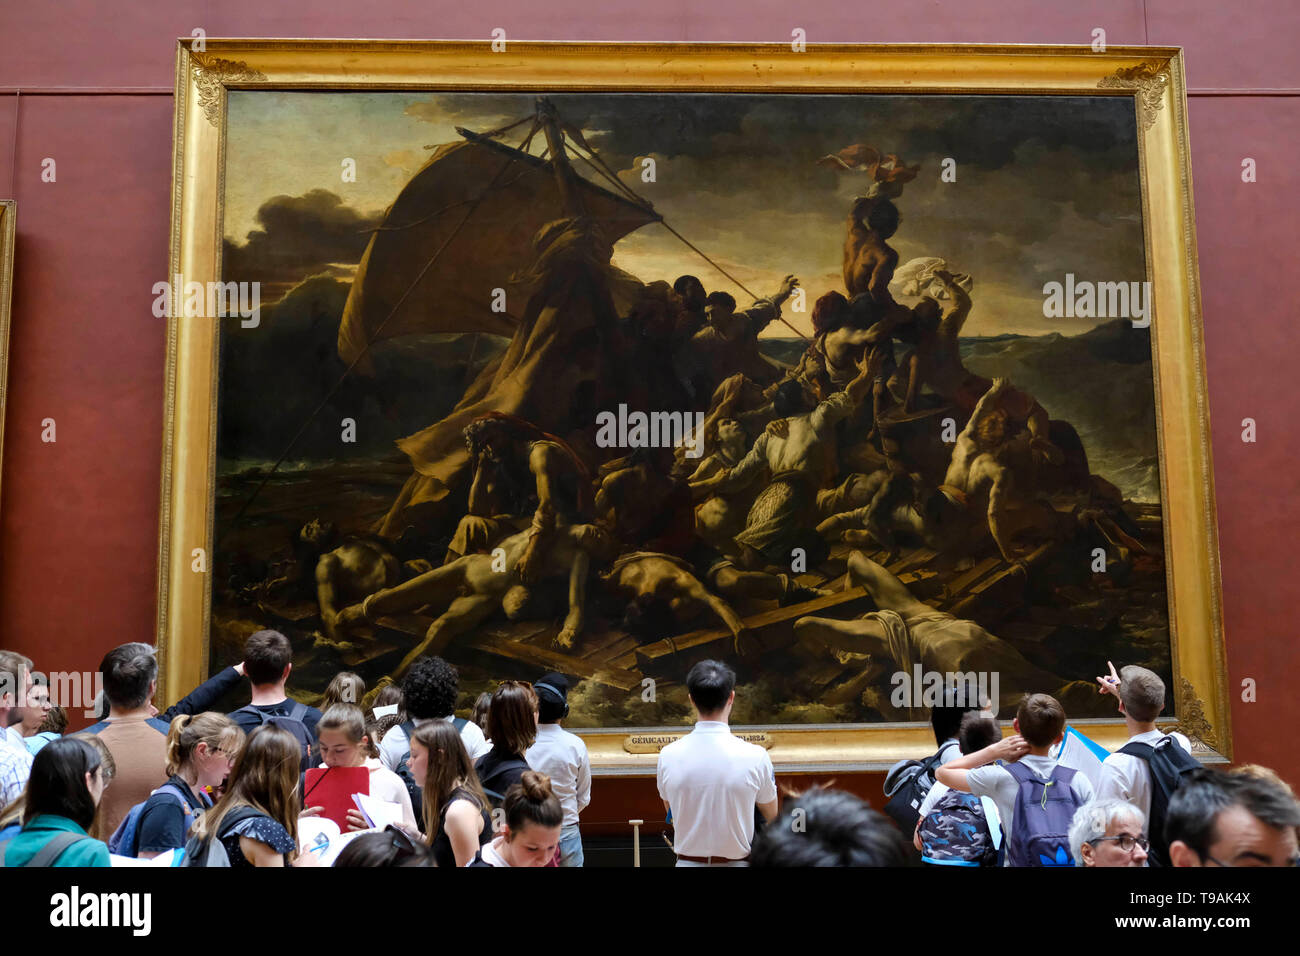 Beijing, France. 15th May, 2019. People view the Radeau de la Meduse, or the Raft of the Medusa by Theodore Gericault displayed at the Louvre Museum in Paris, France, May 15, 2019. Saturday marks the International Museum Day. Credit: Alexandre Karmen/Xinhua/Alamy Live News Stock Photo